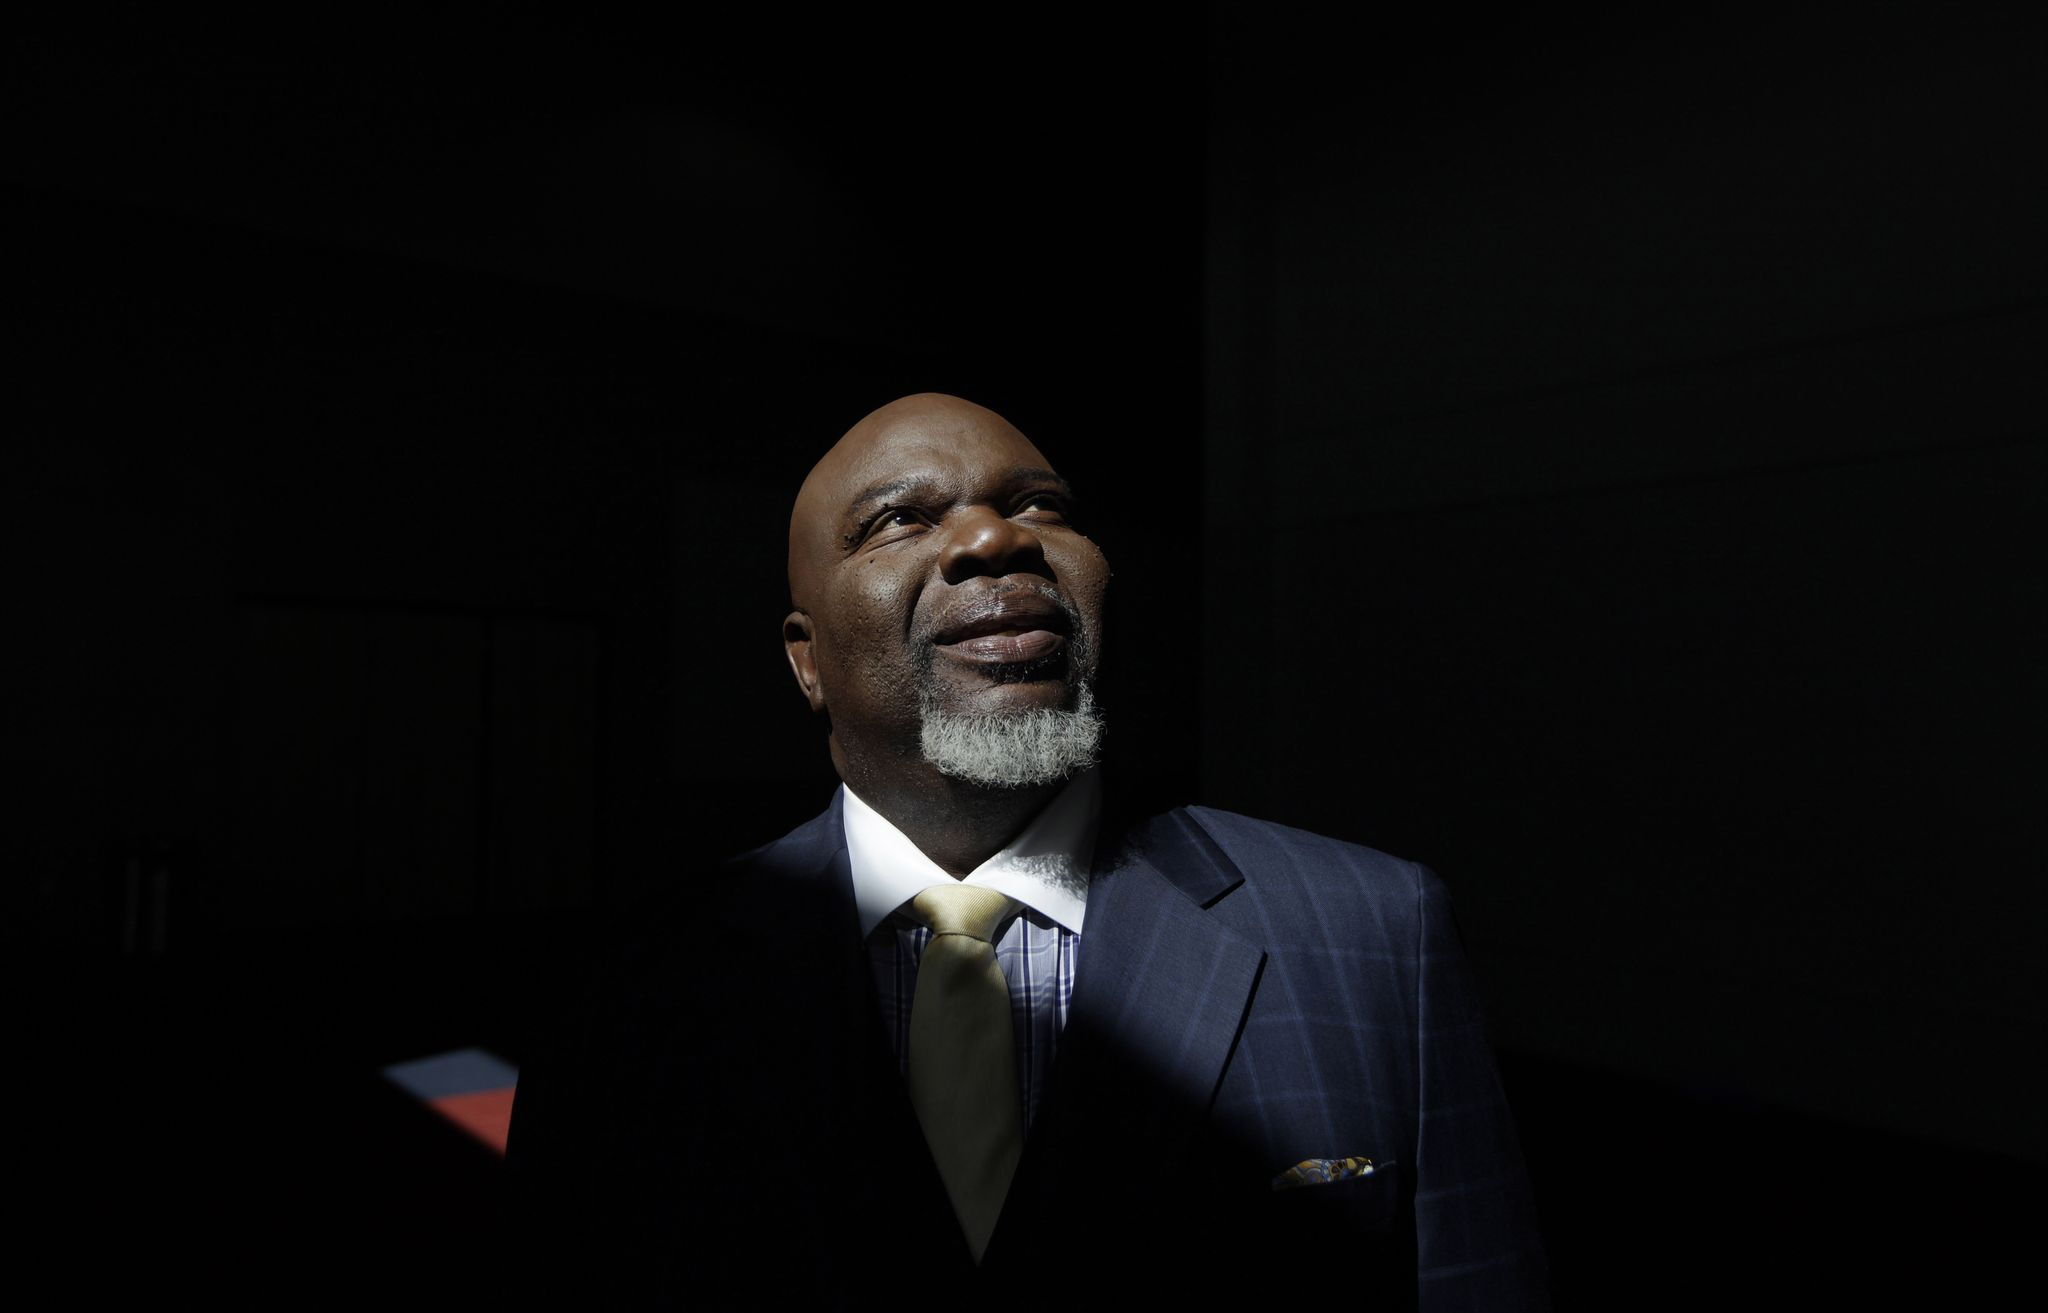 T.D. Jakes clarifies his comments on 'evolving' on gay rights